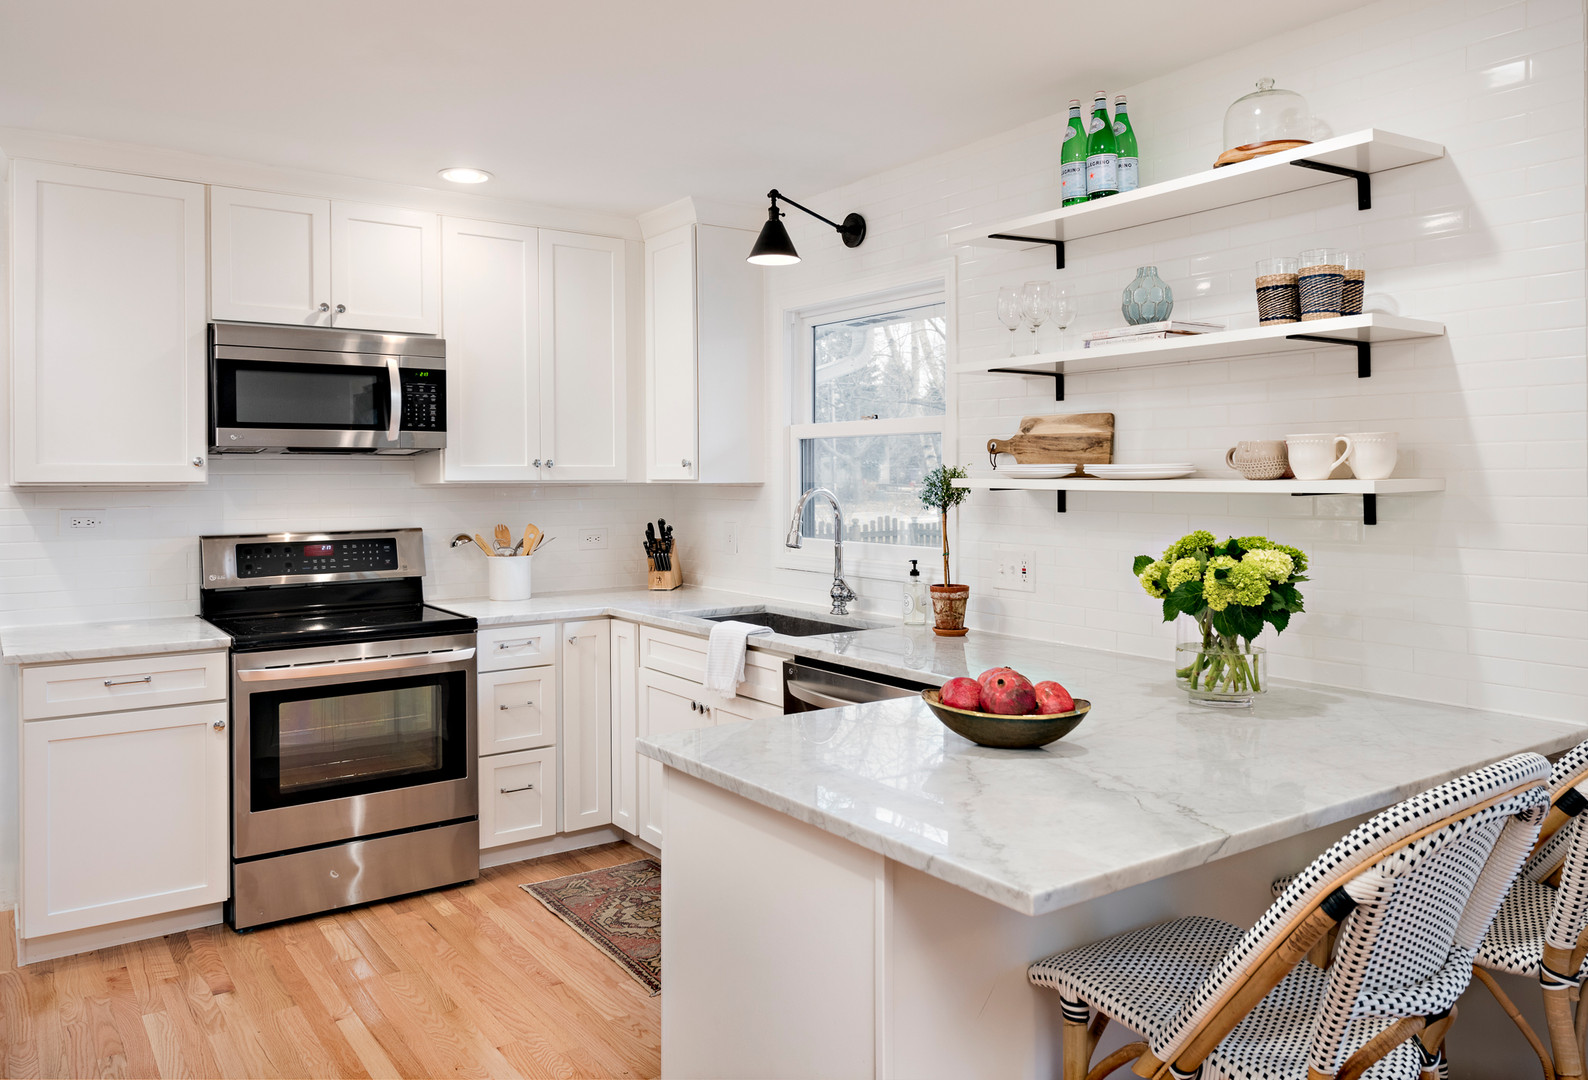 212 East 11th Avenue kitchen